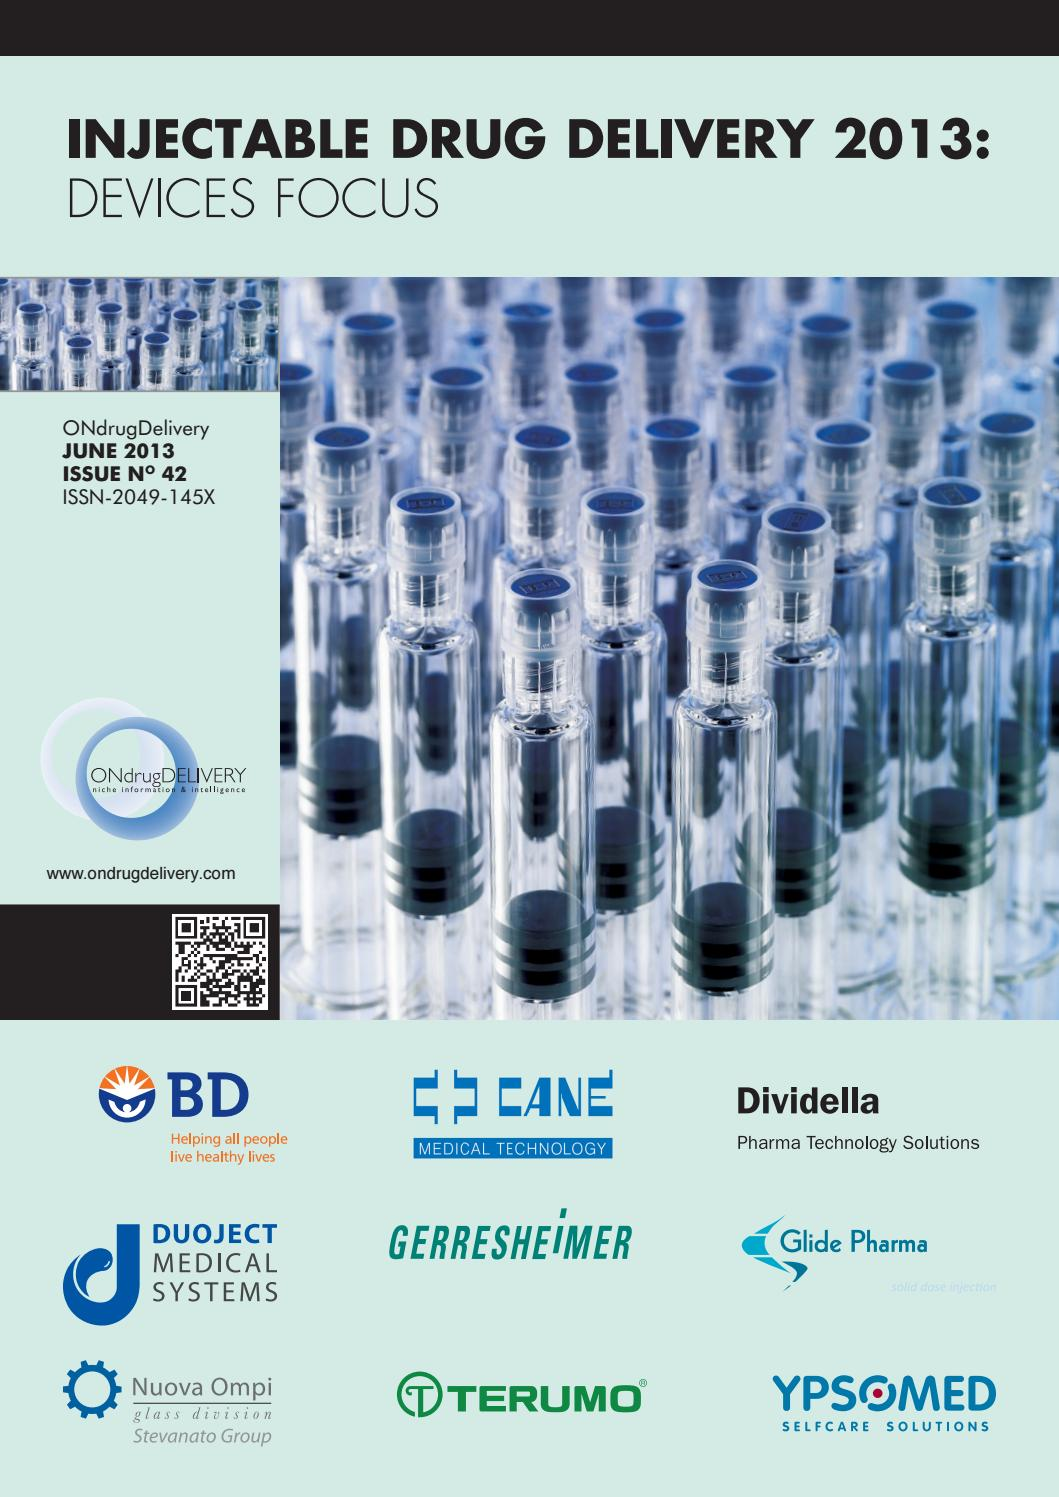 Injectable Drug Delivery: Devices Focus - ONdrugDelivery - Issue 42